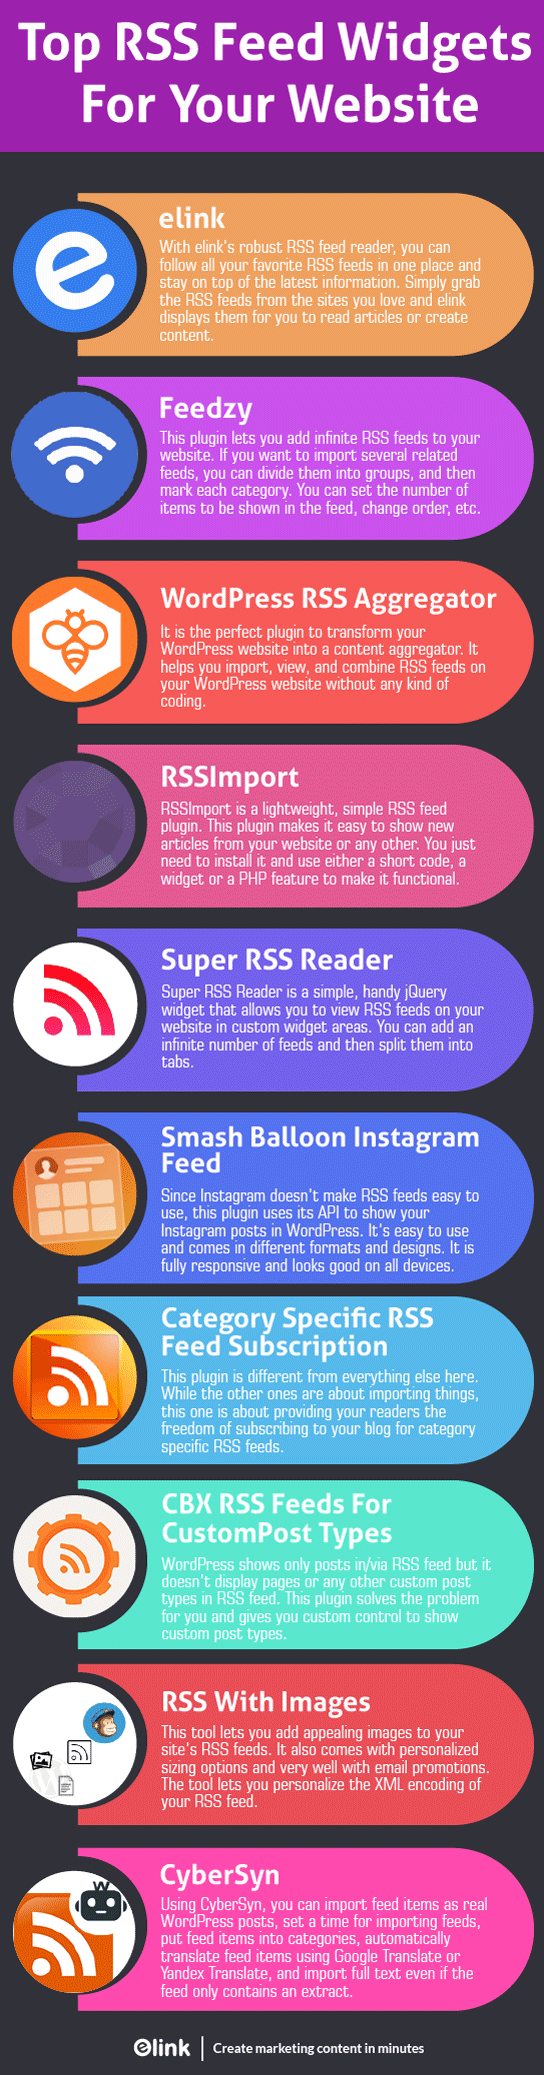 Rss feed widgets infographic